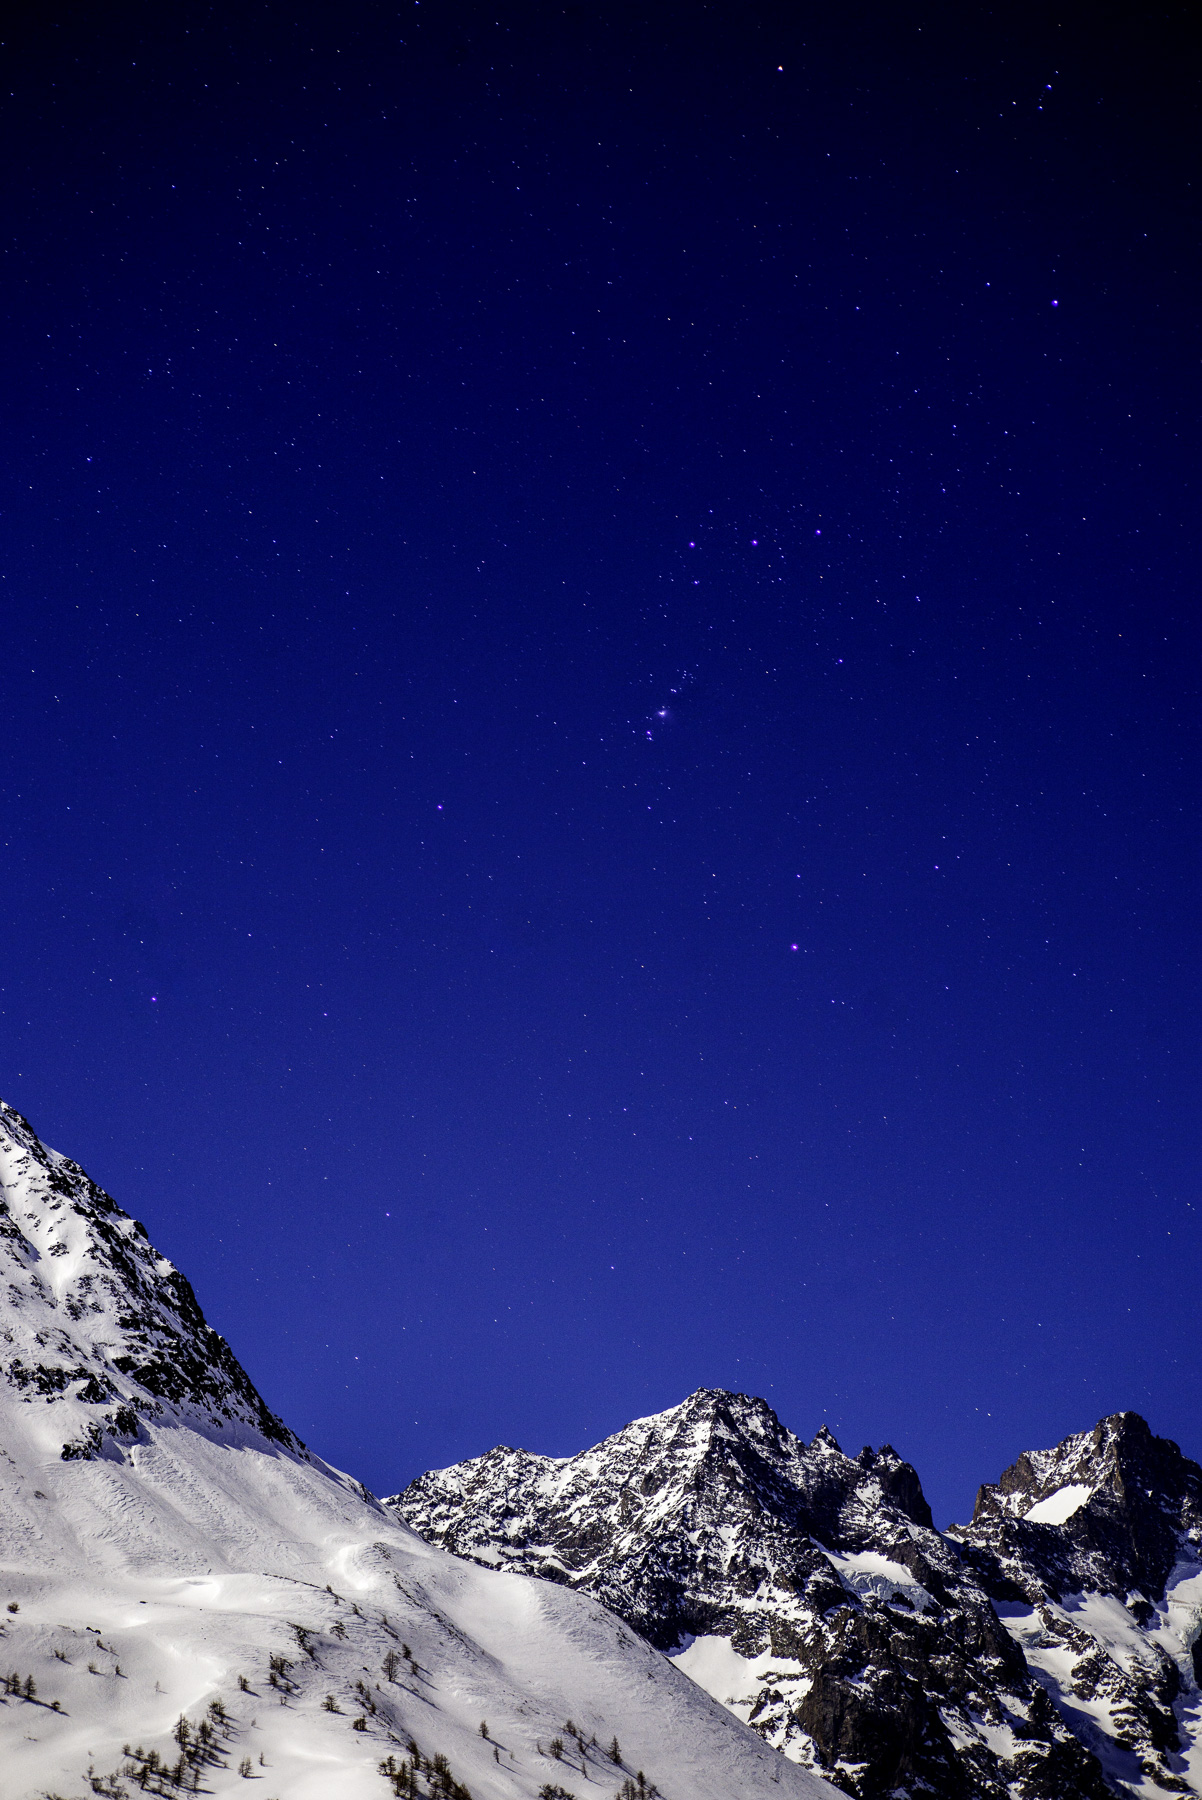 daniel-fine-photo-hyperfocale-641.jpg  snowmoon